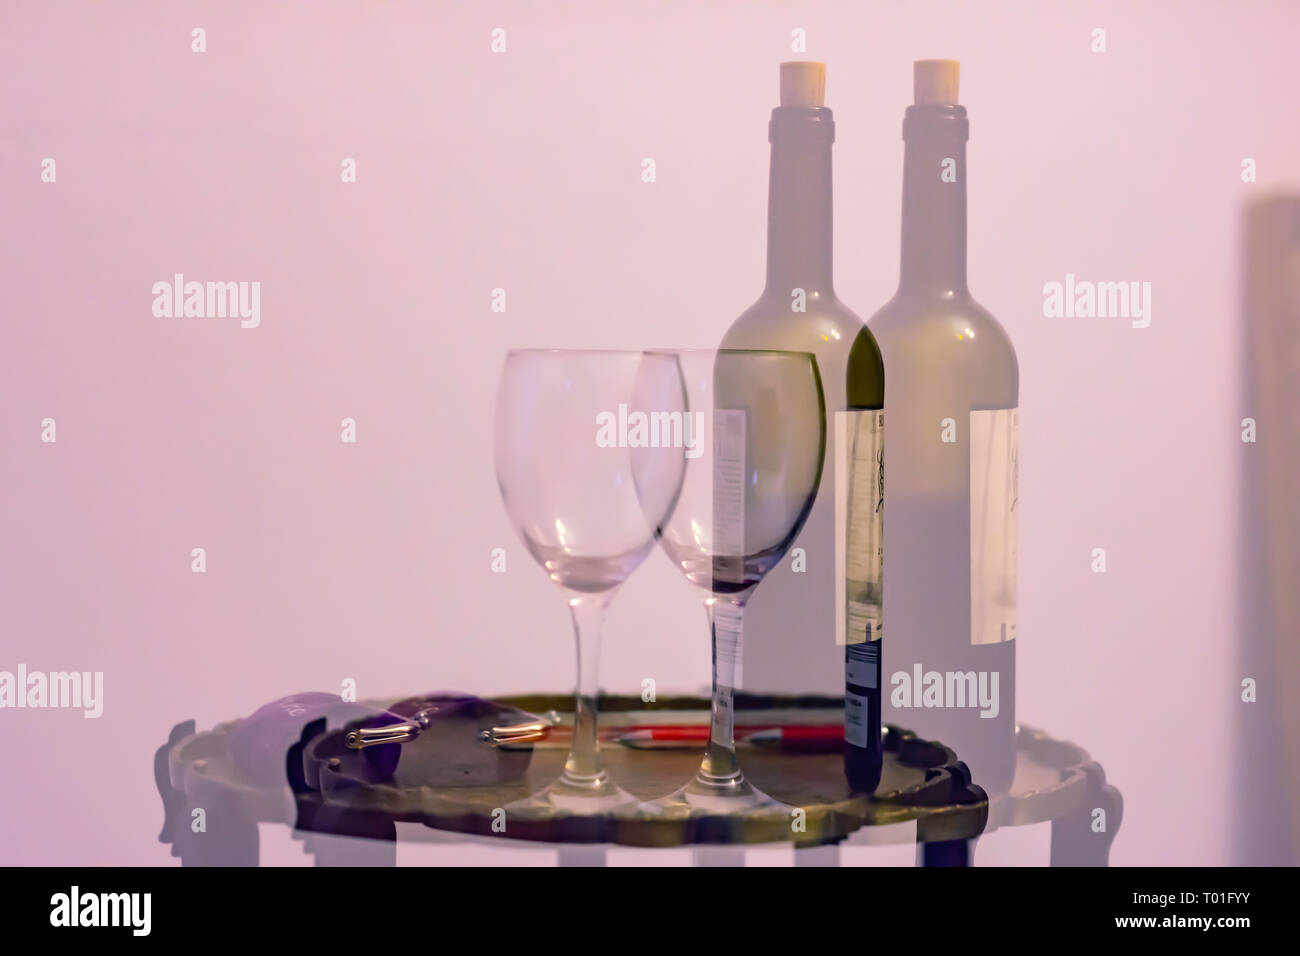 Double vision after alcohol consumption.Double exposure image of bottle of wine and empty glass placed on table with purse. - Stock Image